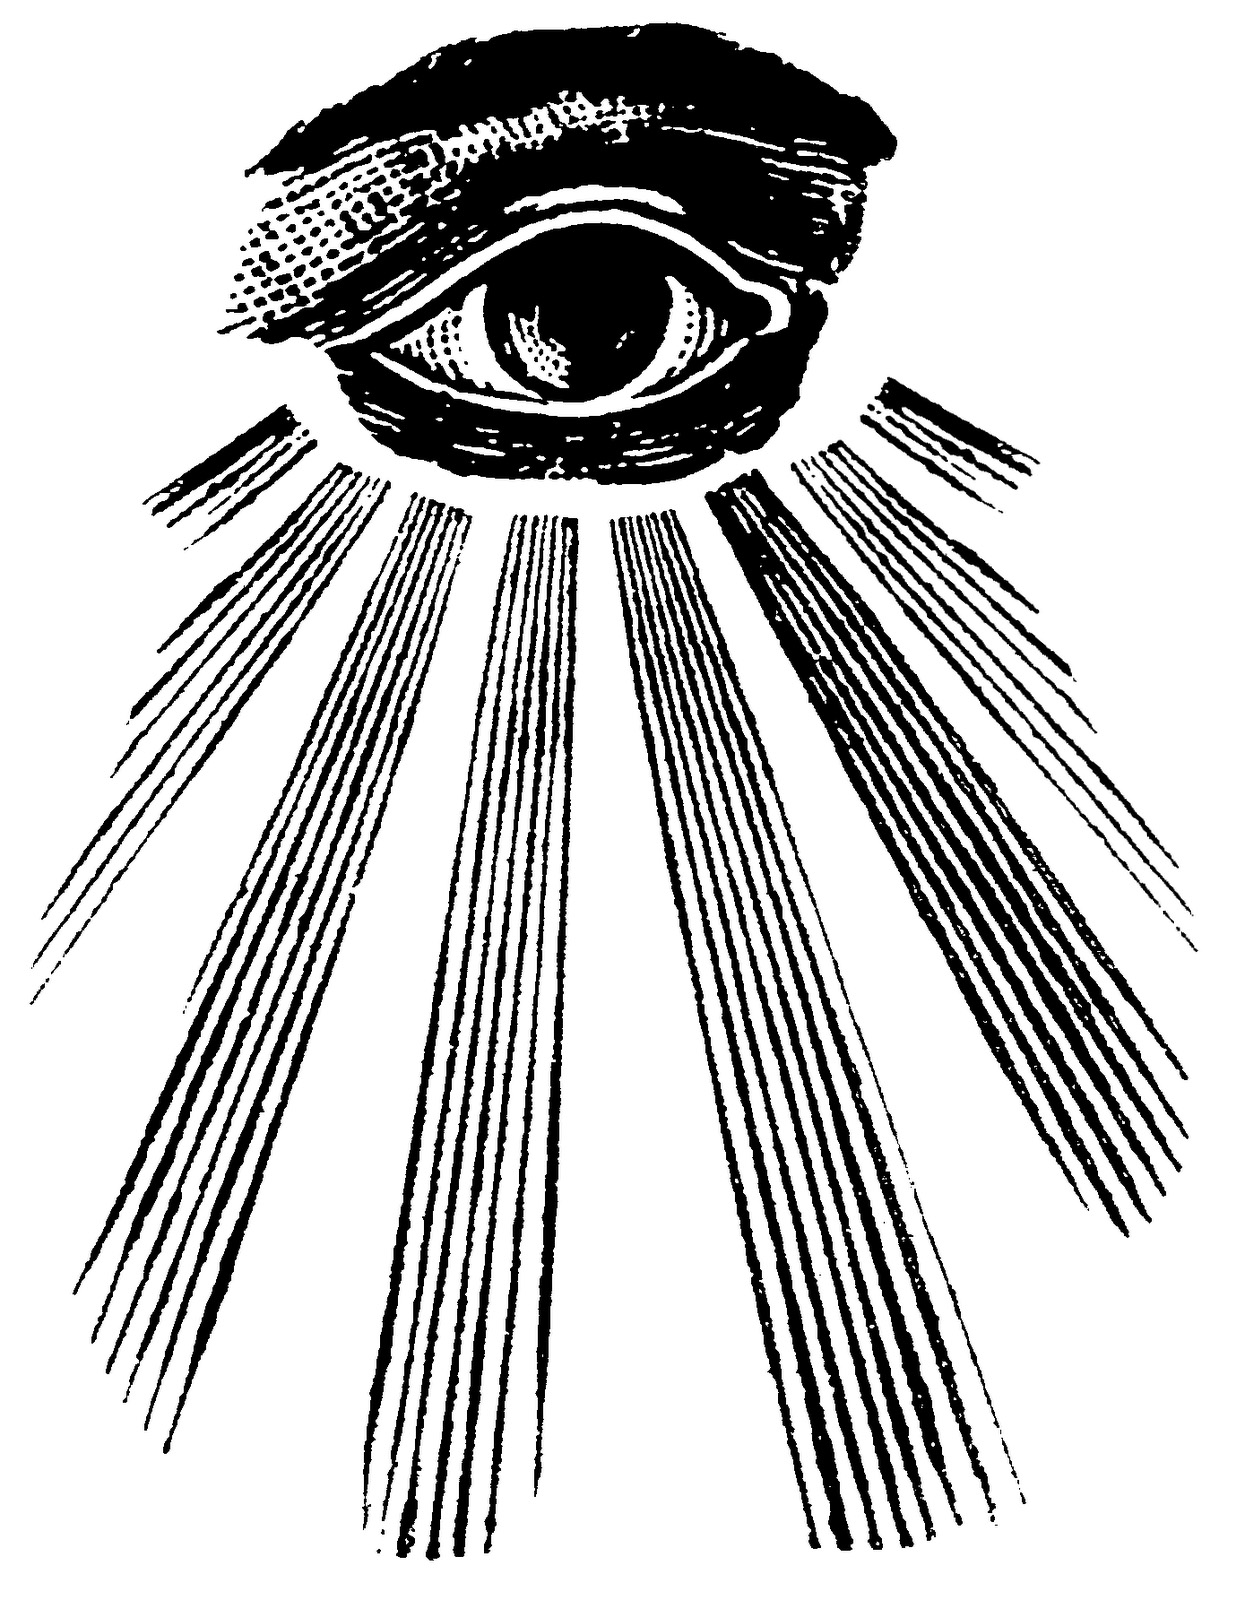 The All Seeing Eye As Omnipresent Deity